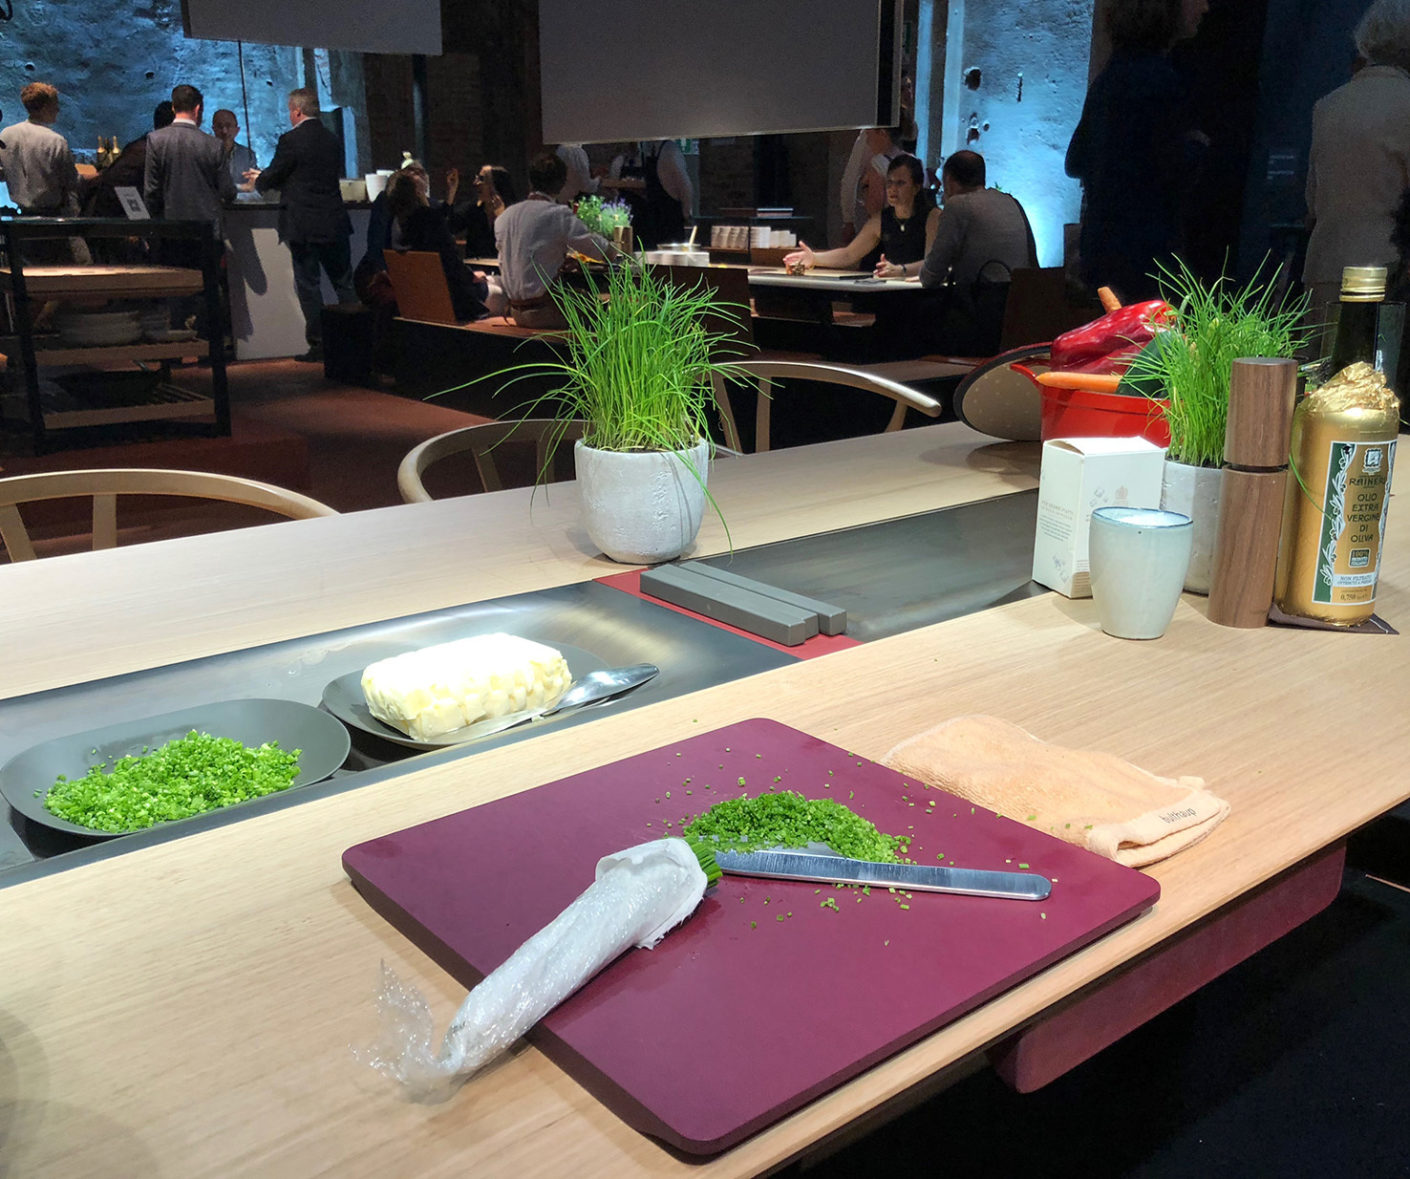 """Cooled or heated: Food preparation becomes a communicative experience at Bulthaup's multifunctional """"b.architecture"""" table."""